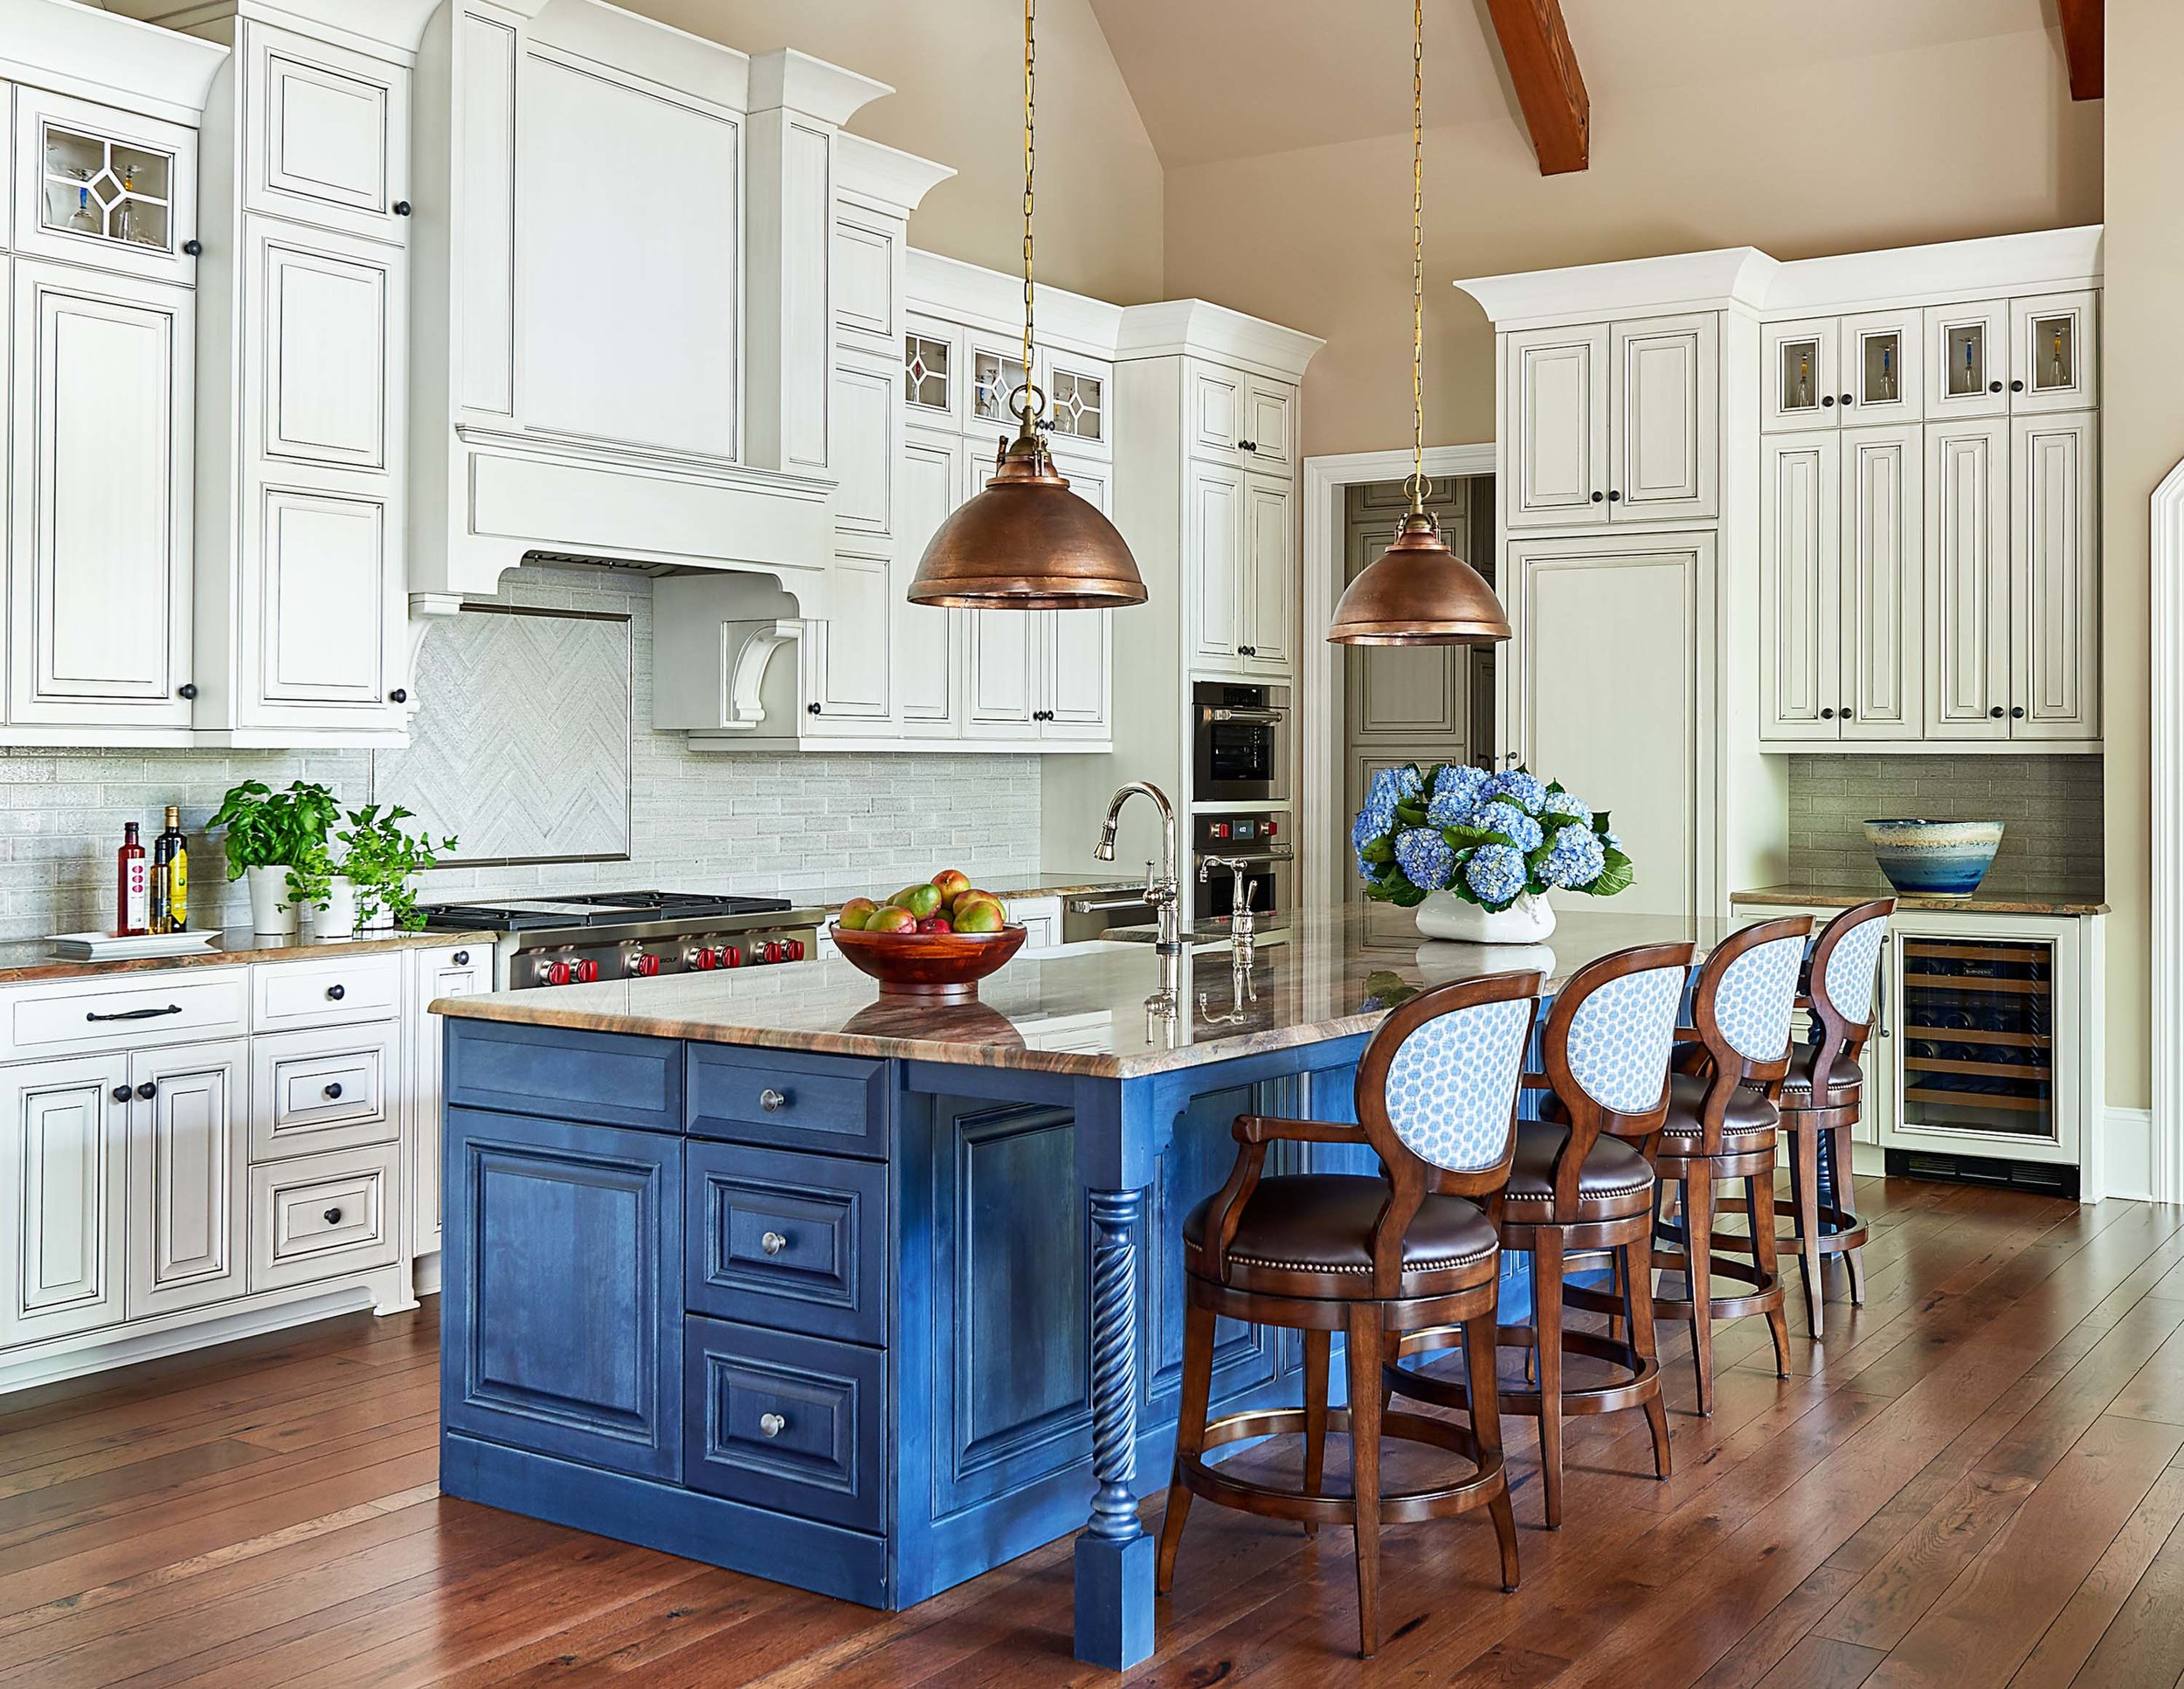 Luxury home kitchen with white cabinets and blue stained island with Currey and Company copper light pendants